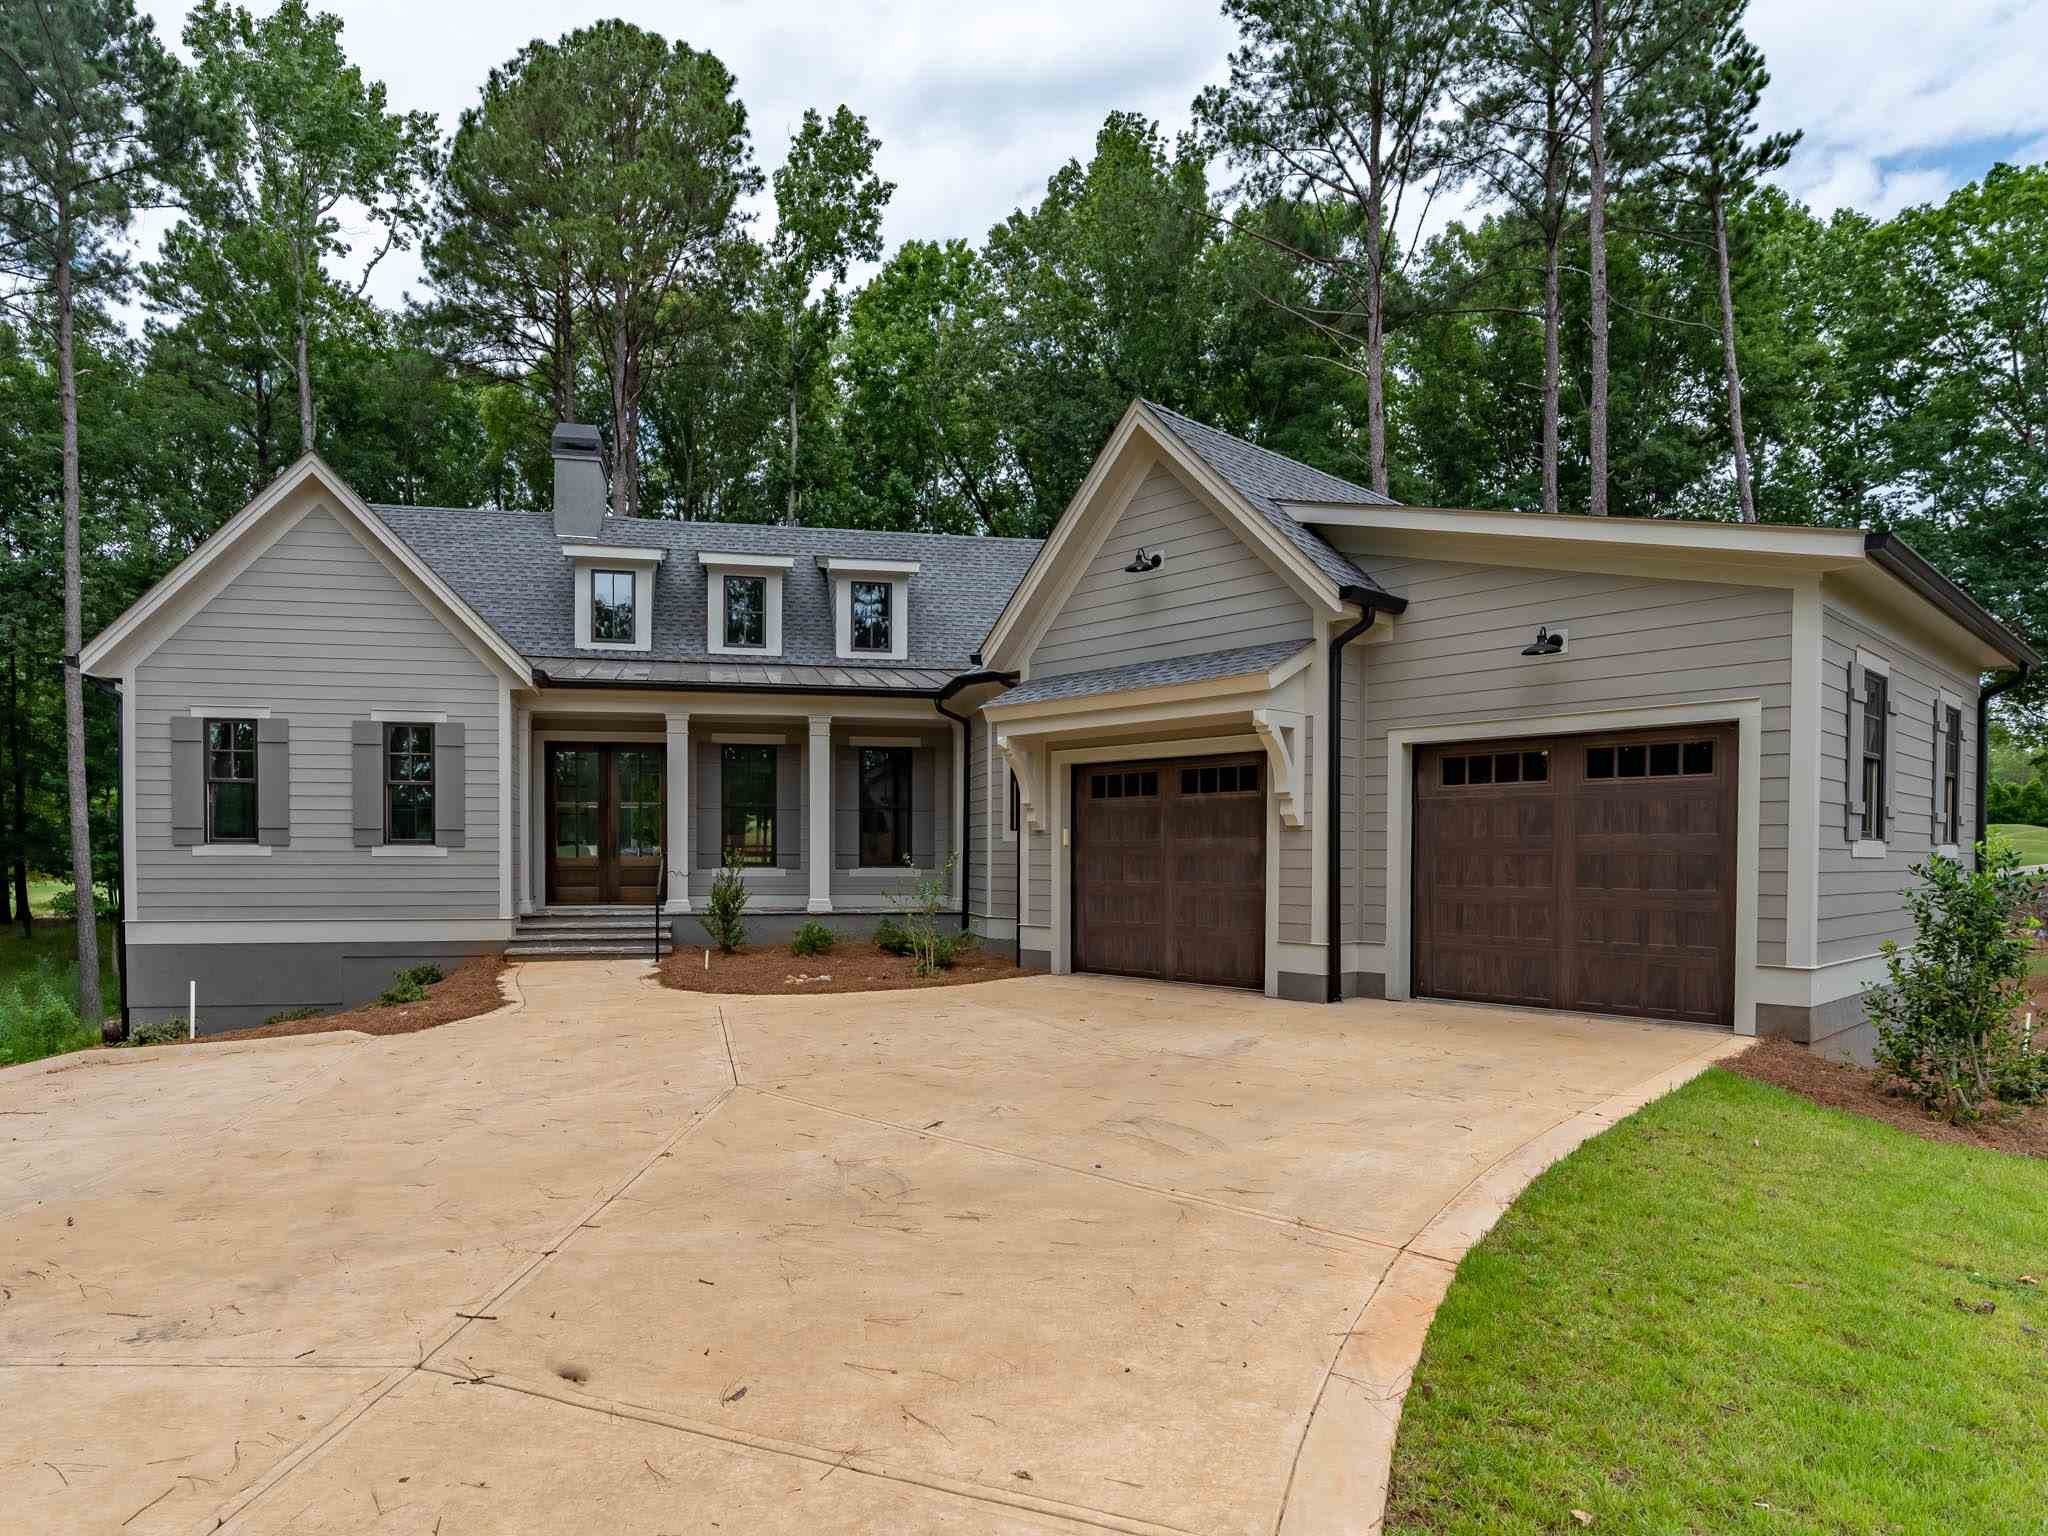 1170 LONG COVE DRIVE, Lake Oconee Reynolds Landing in Greene County, GA 30642 Home for Sale